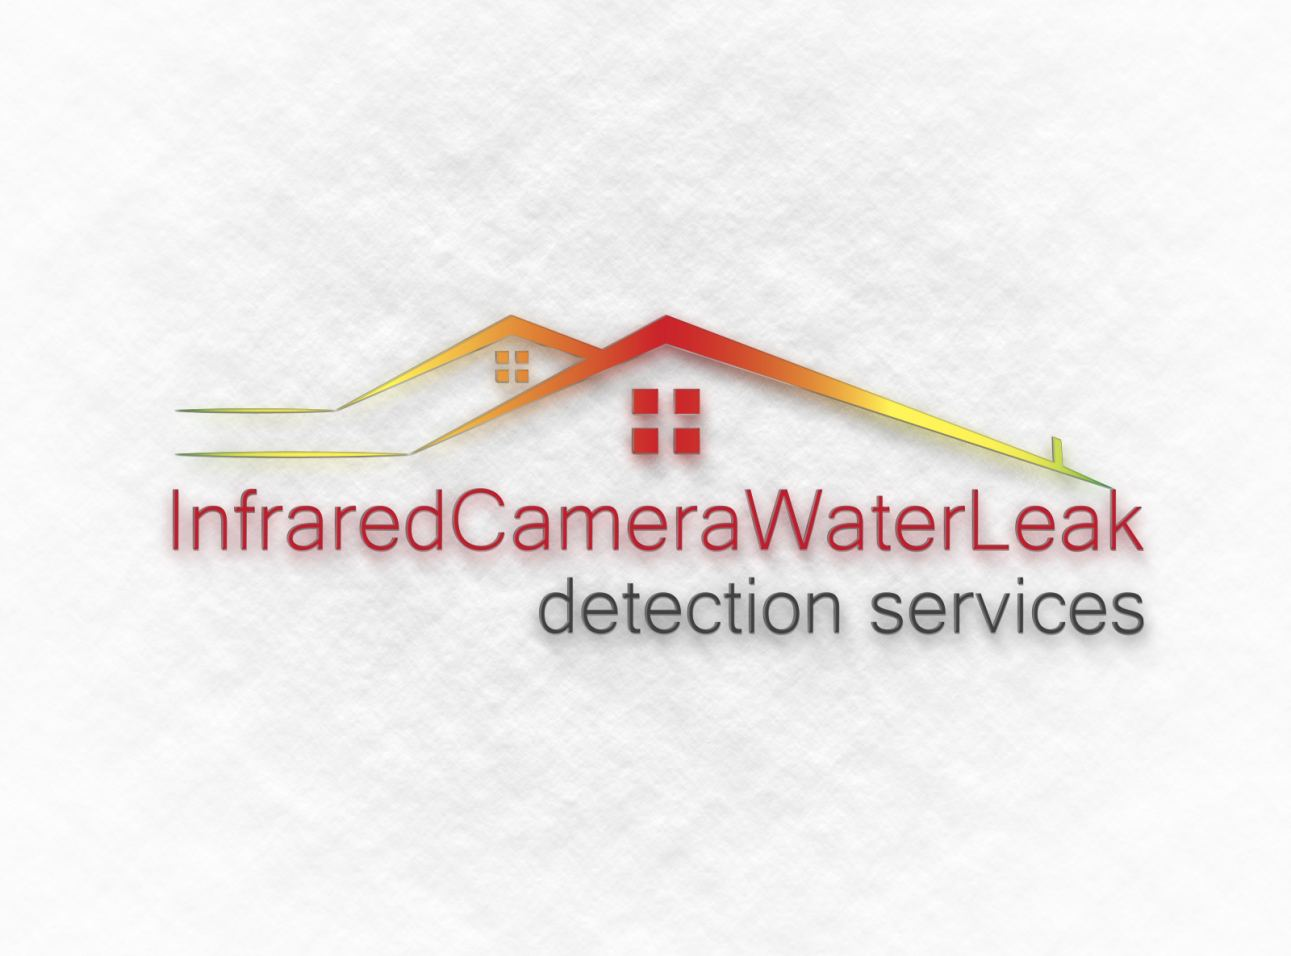 5 Texas Cities Offer Infrared Camera Water Leak Detection Services Thermal Imaging Roof Scans